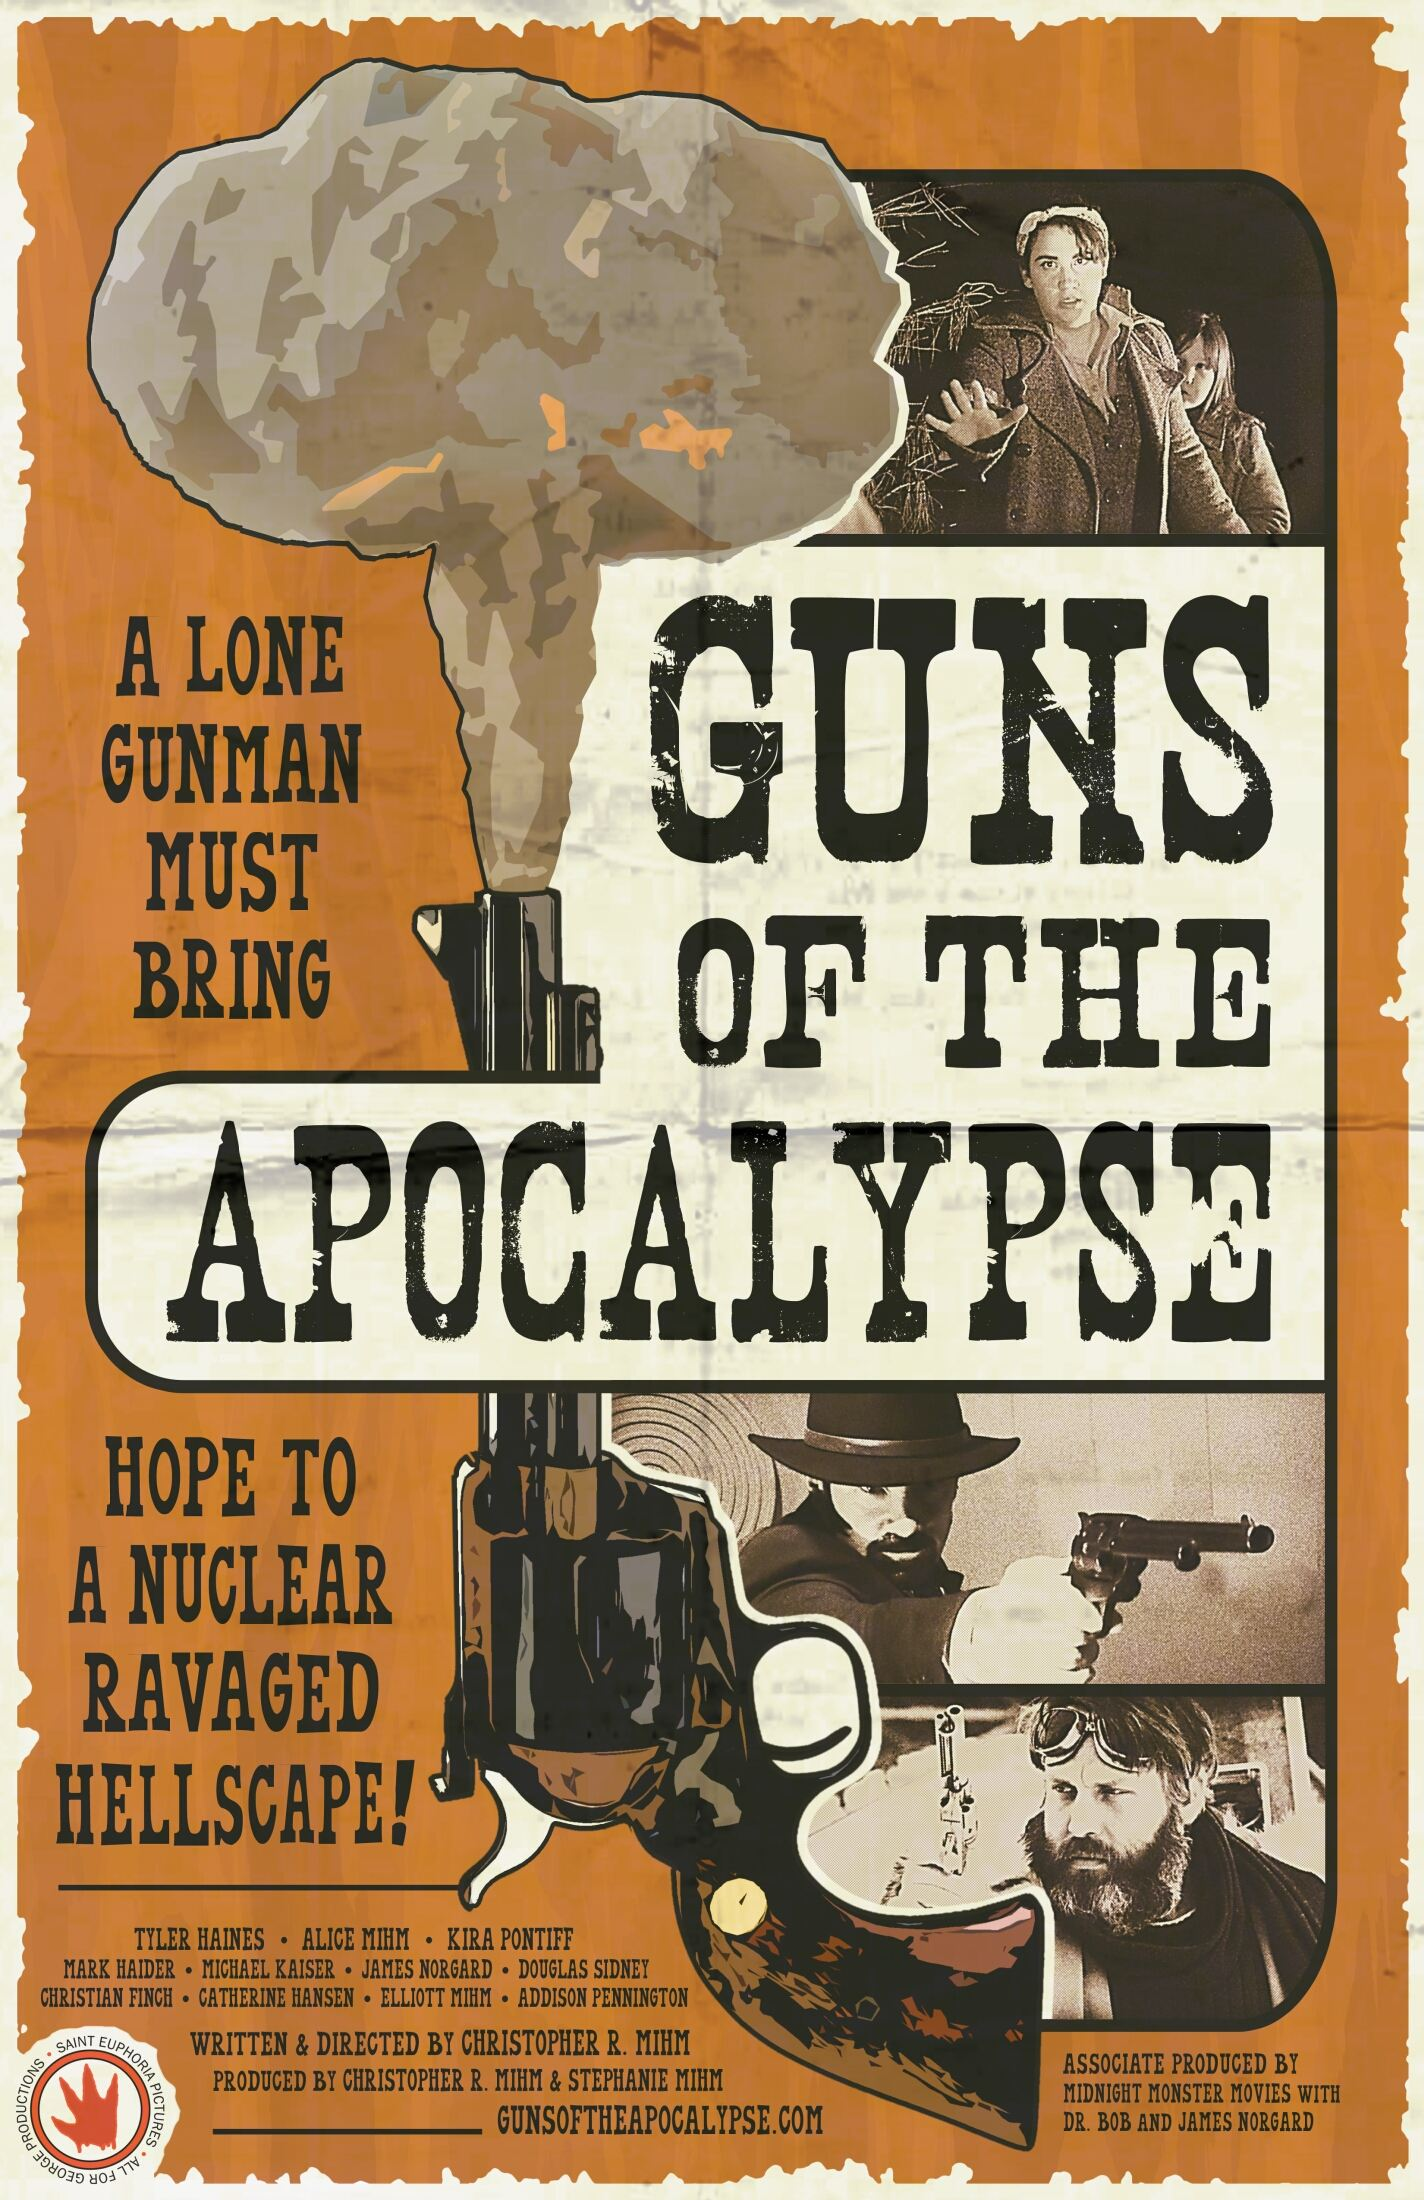 Official Poster for Guns of the Apocalypse